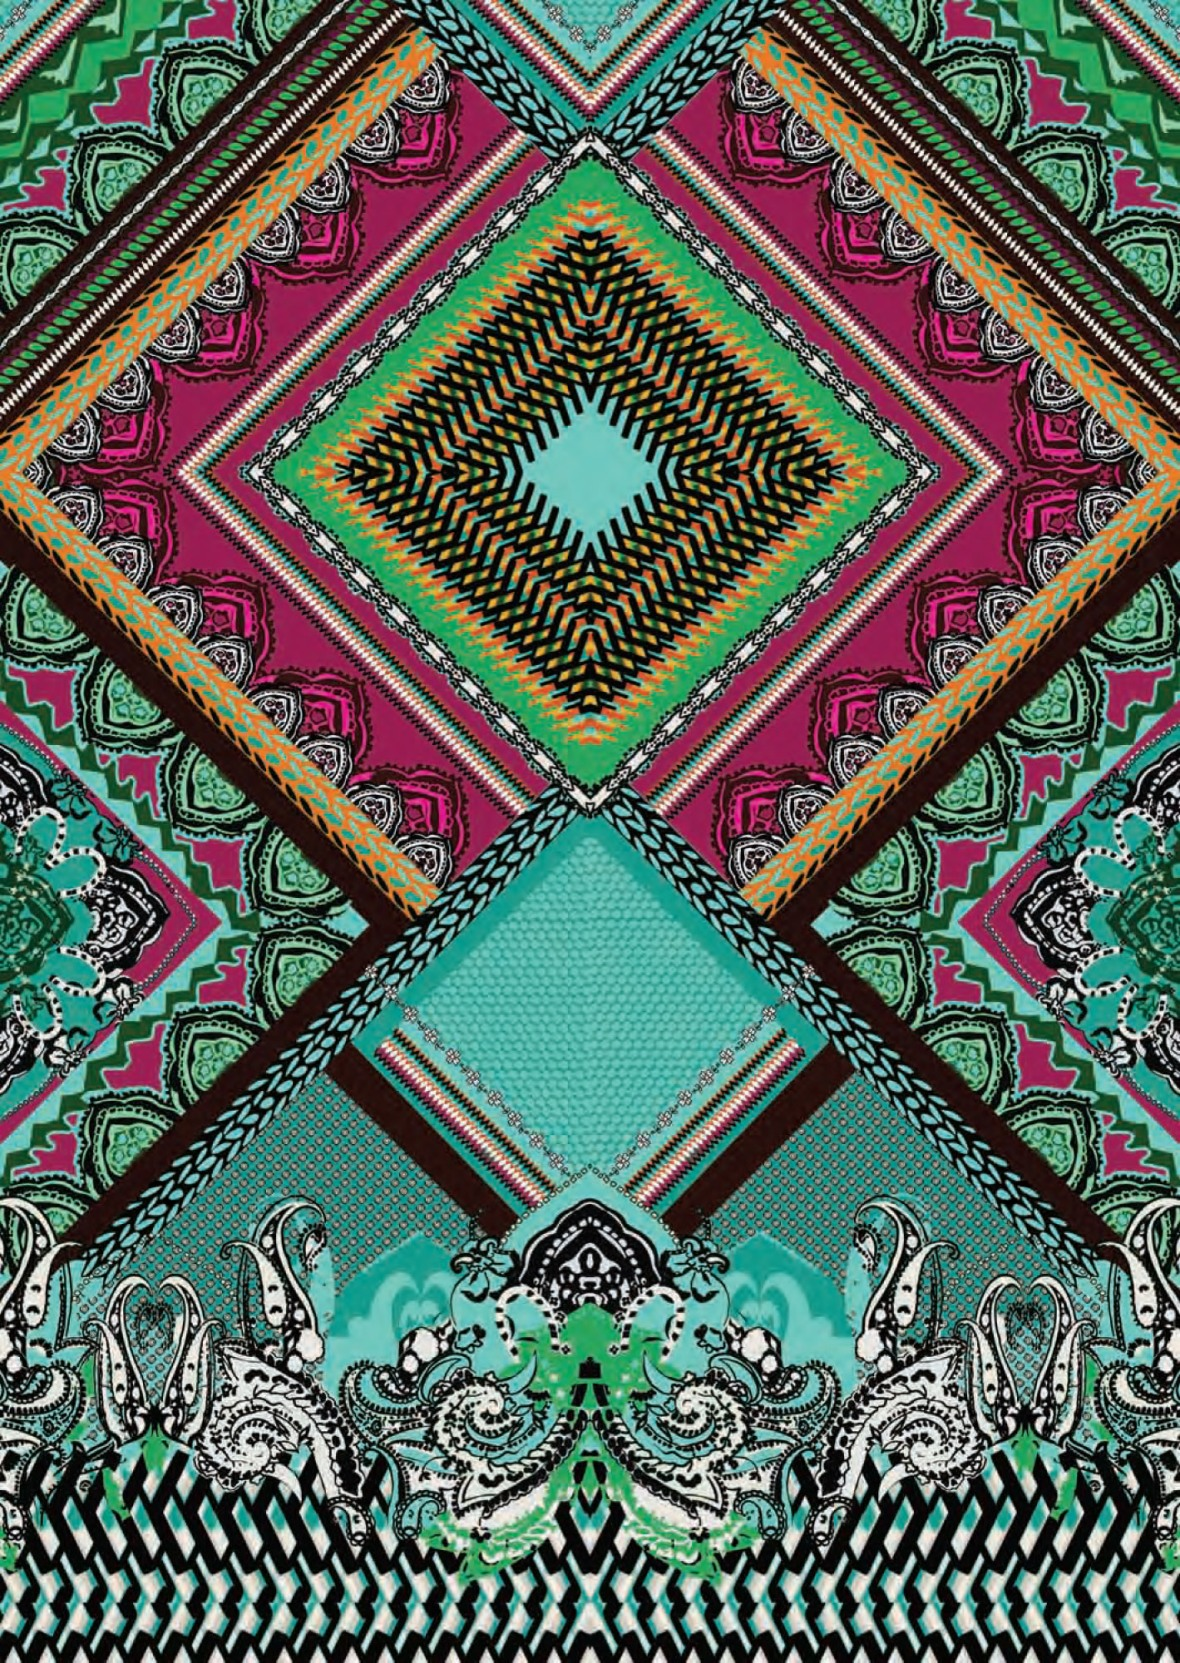 + ROSEANN SCRIVENS + complex repeat patterns photoshop-11